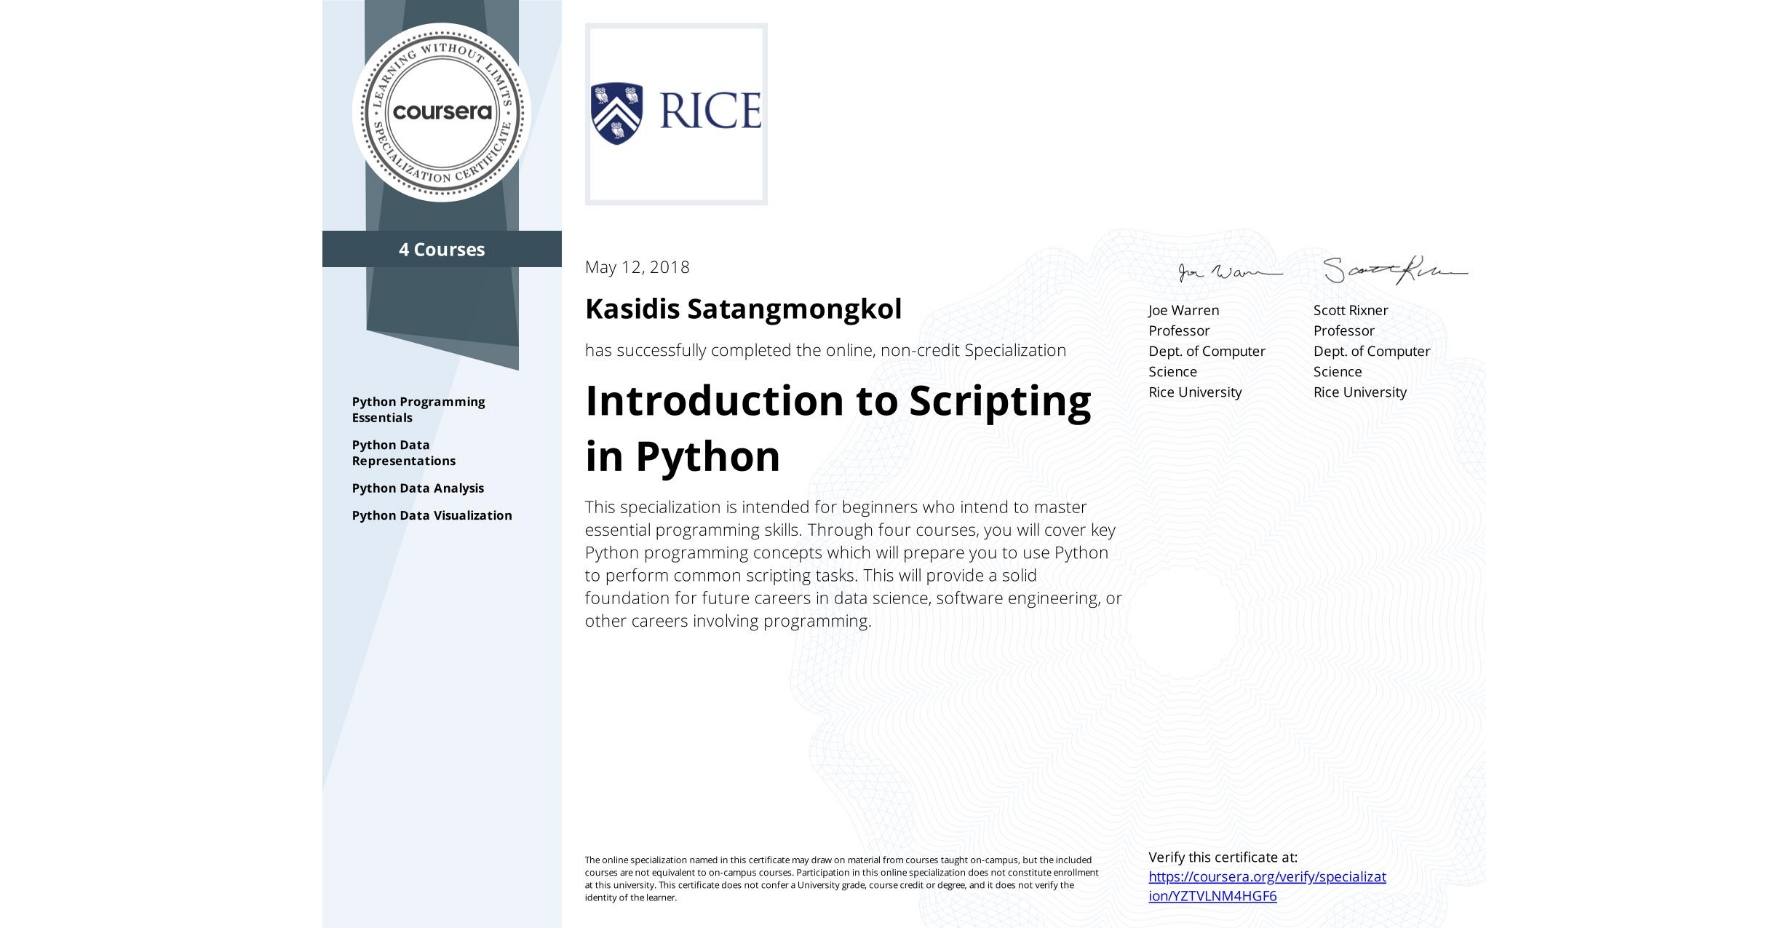 View certificate for KASIDIS SATANGMONGKOL, Introduction to Scripting in Python, offered through Coursera. This specialization is intended for beginners who intend to master essential programming skills. Through four courses, you will cover key Python programming concepts which will prepare you to use Python to perform common scripting tasks. This will provide a solid foundation for future careers in data science, software engineering, or other careers involving programming.